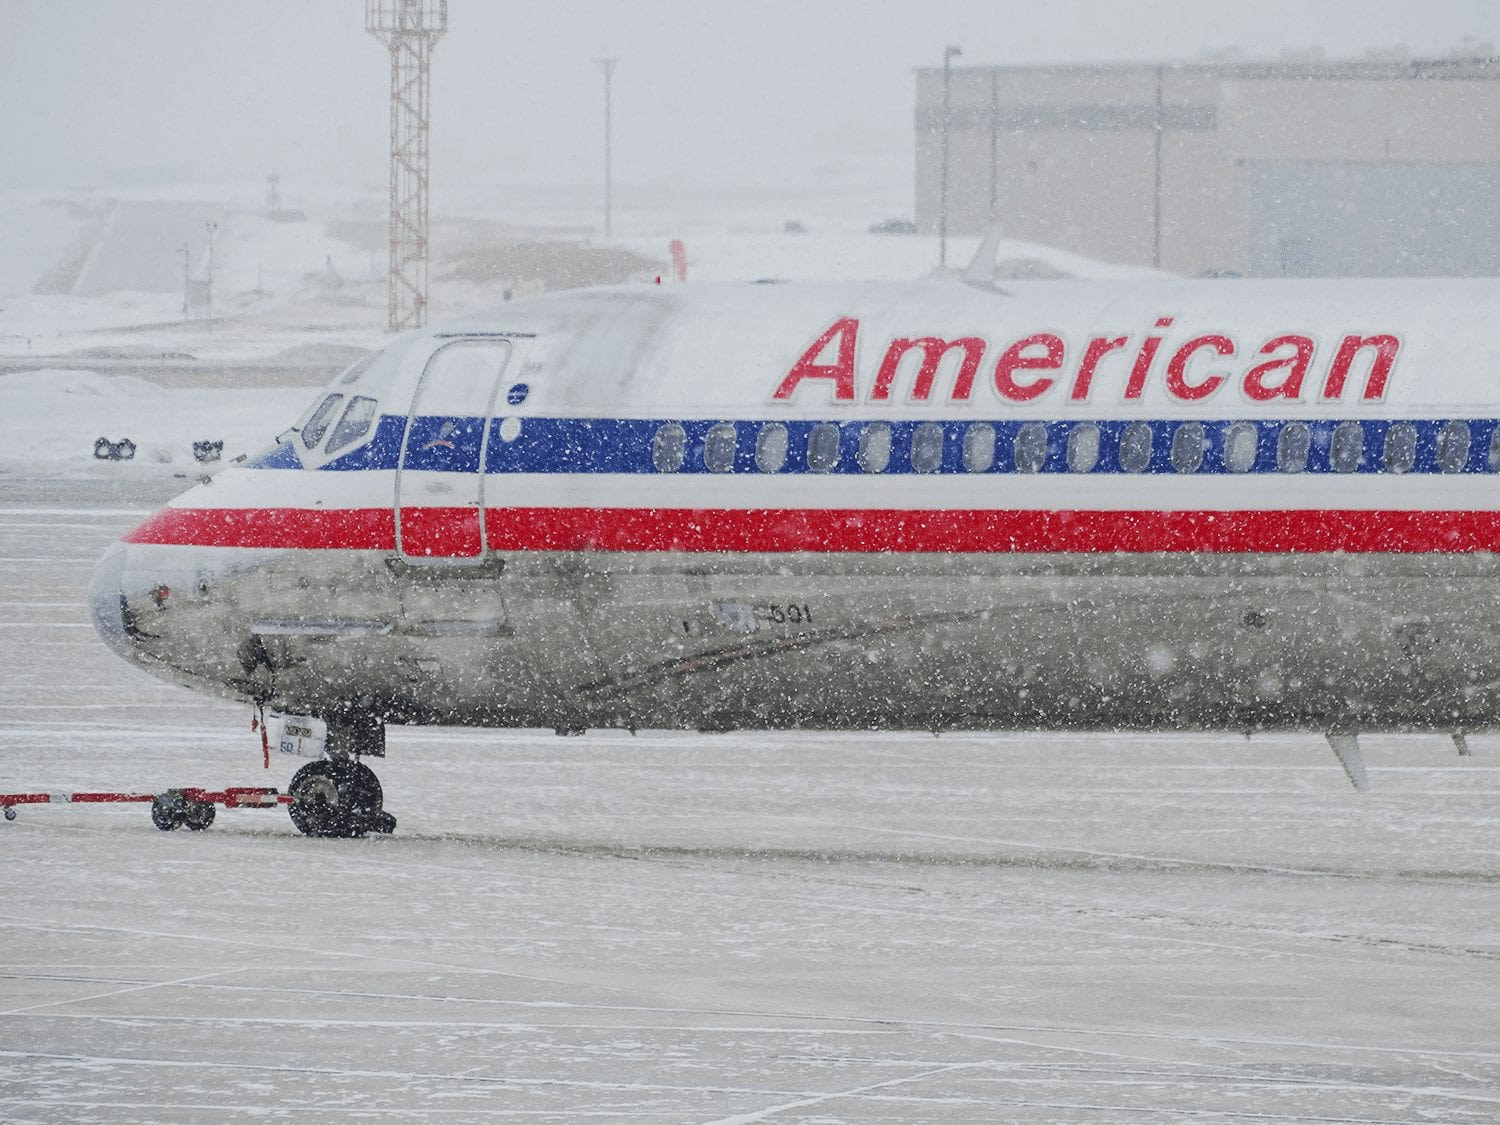 american airlines voucher